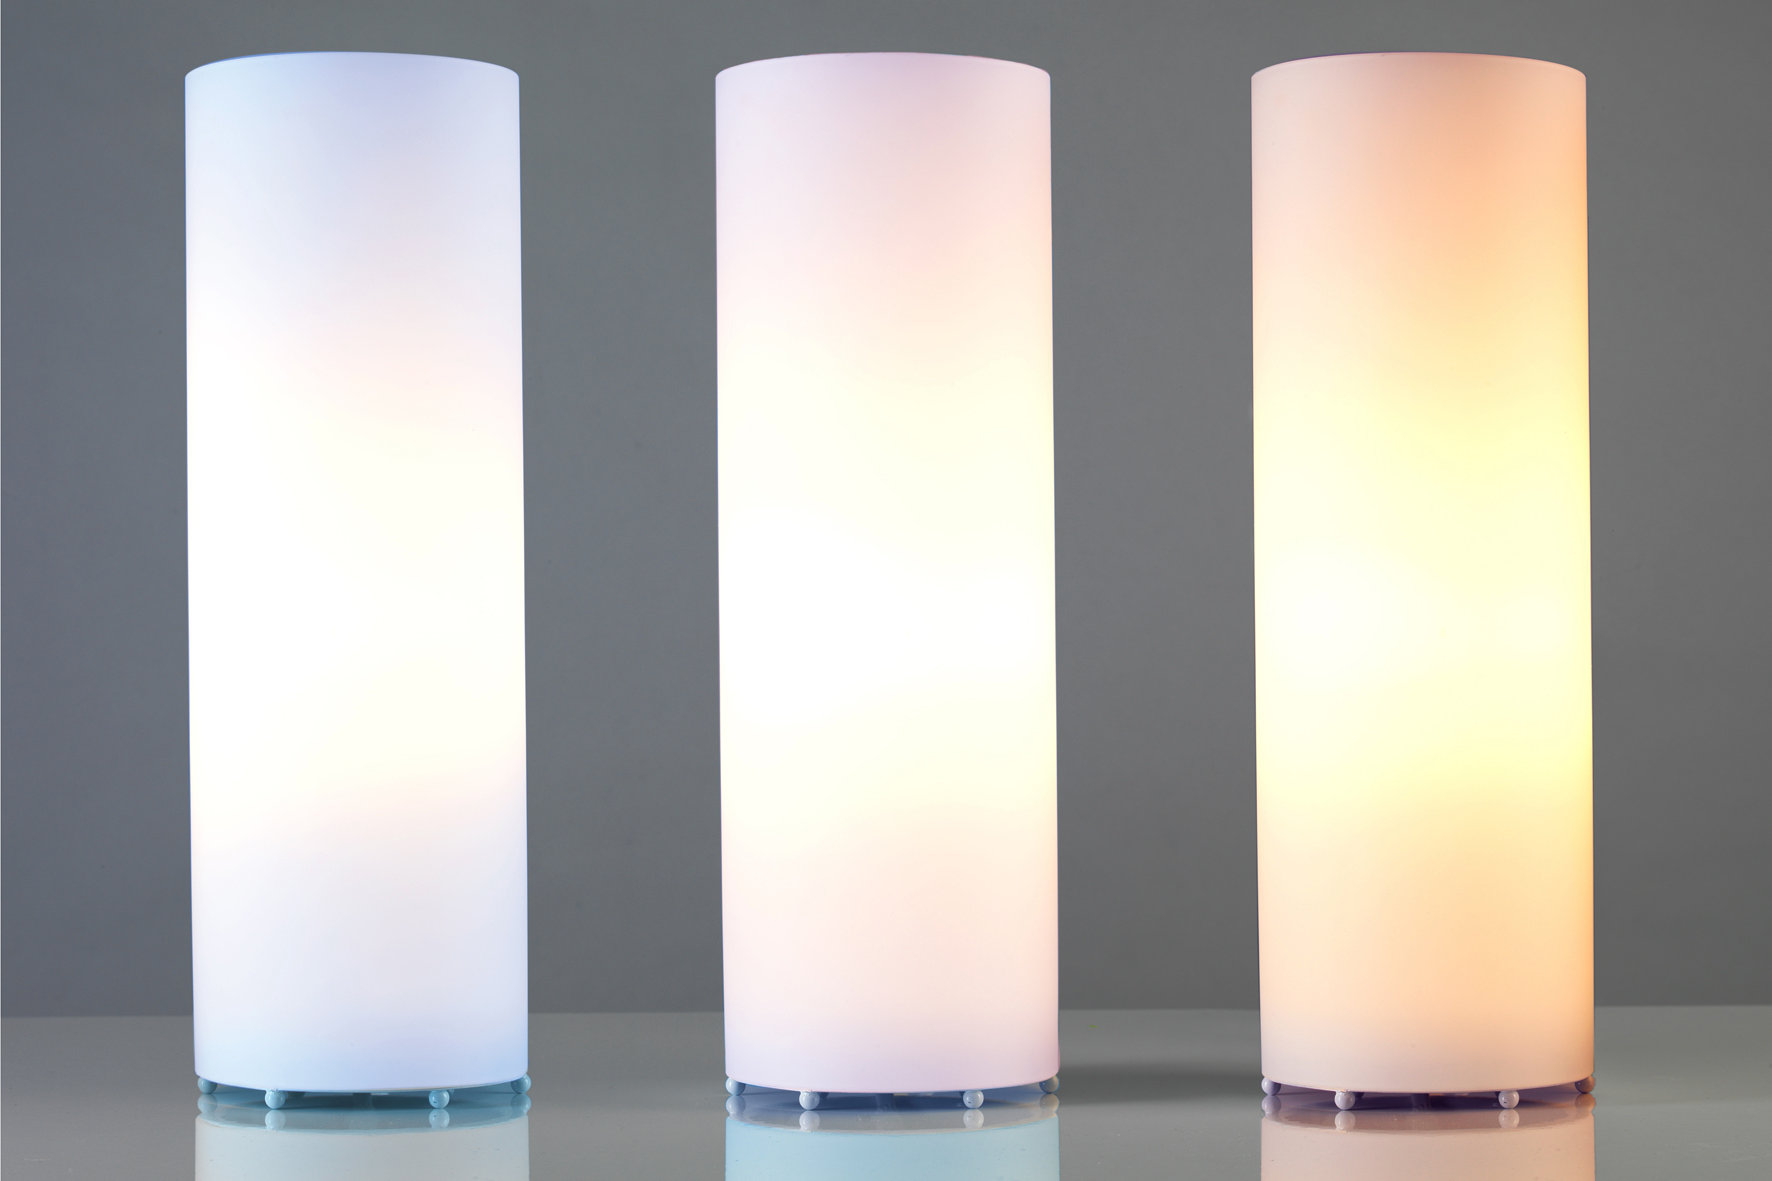 LEDs make it possible u2013 from warm white to daylight white & The right LED lamps for your home | OSRAM Lamps azcodes.com